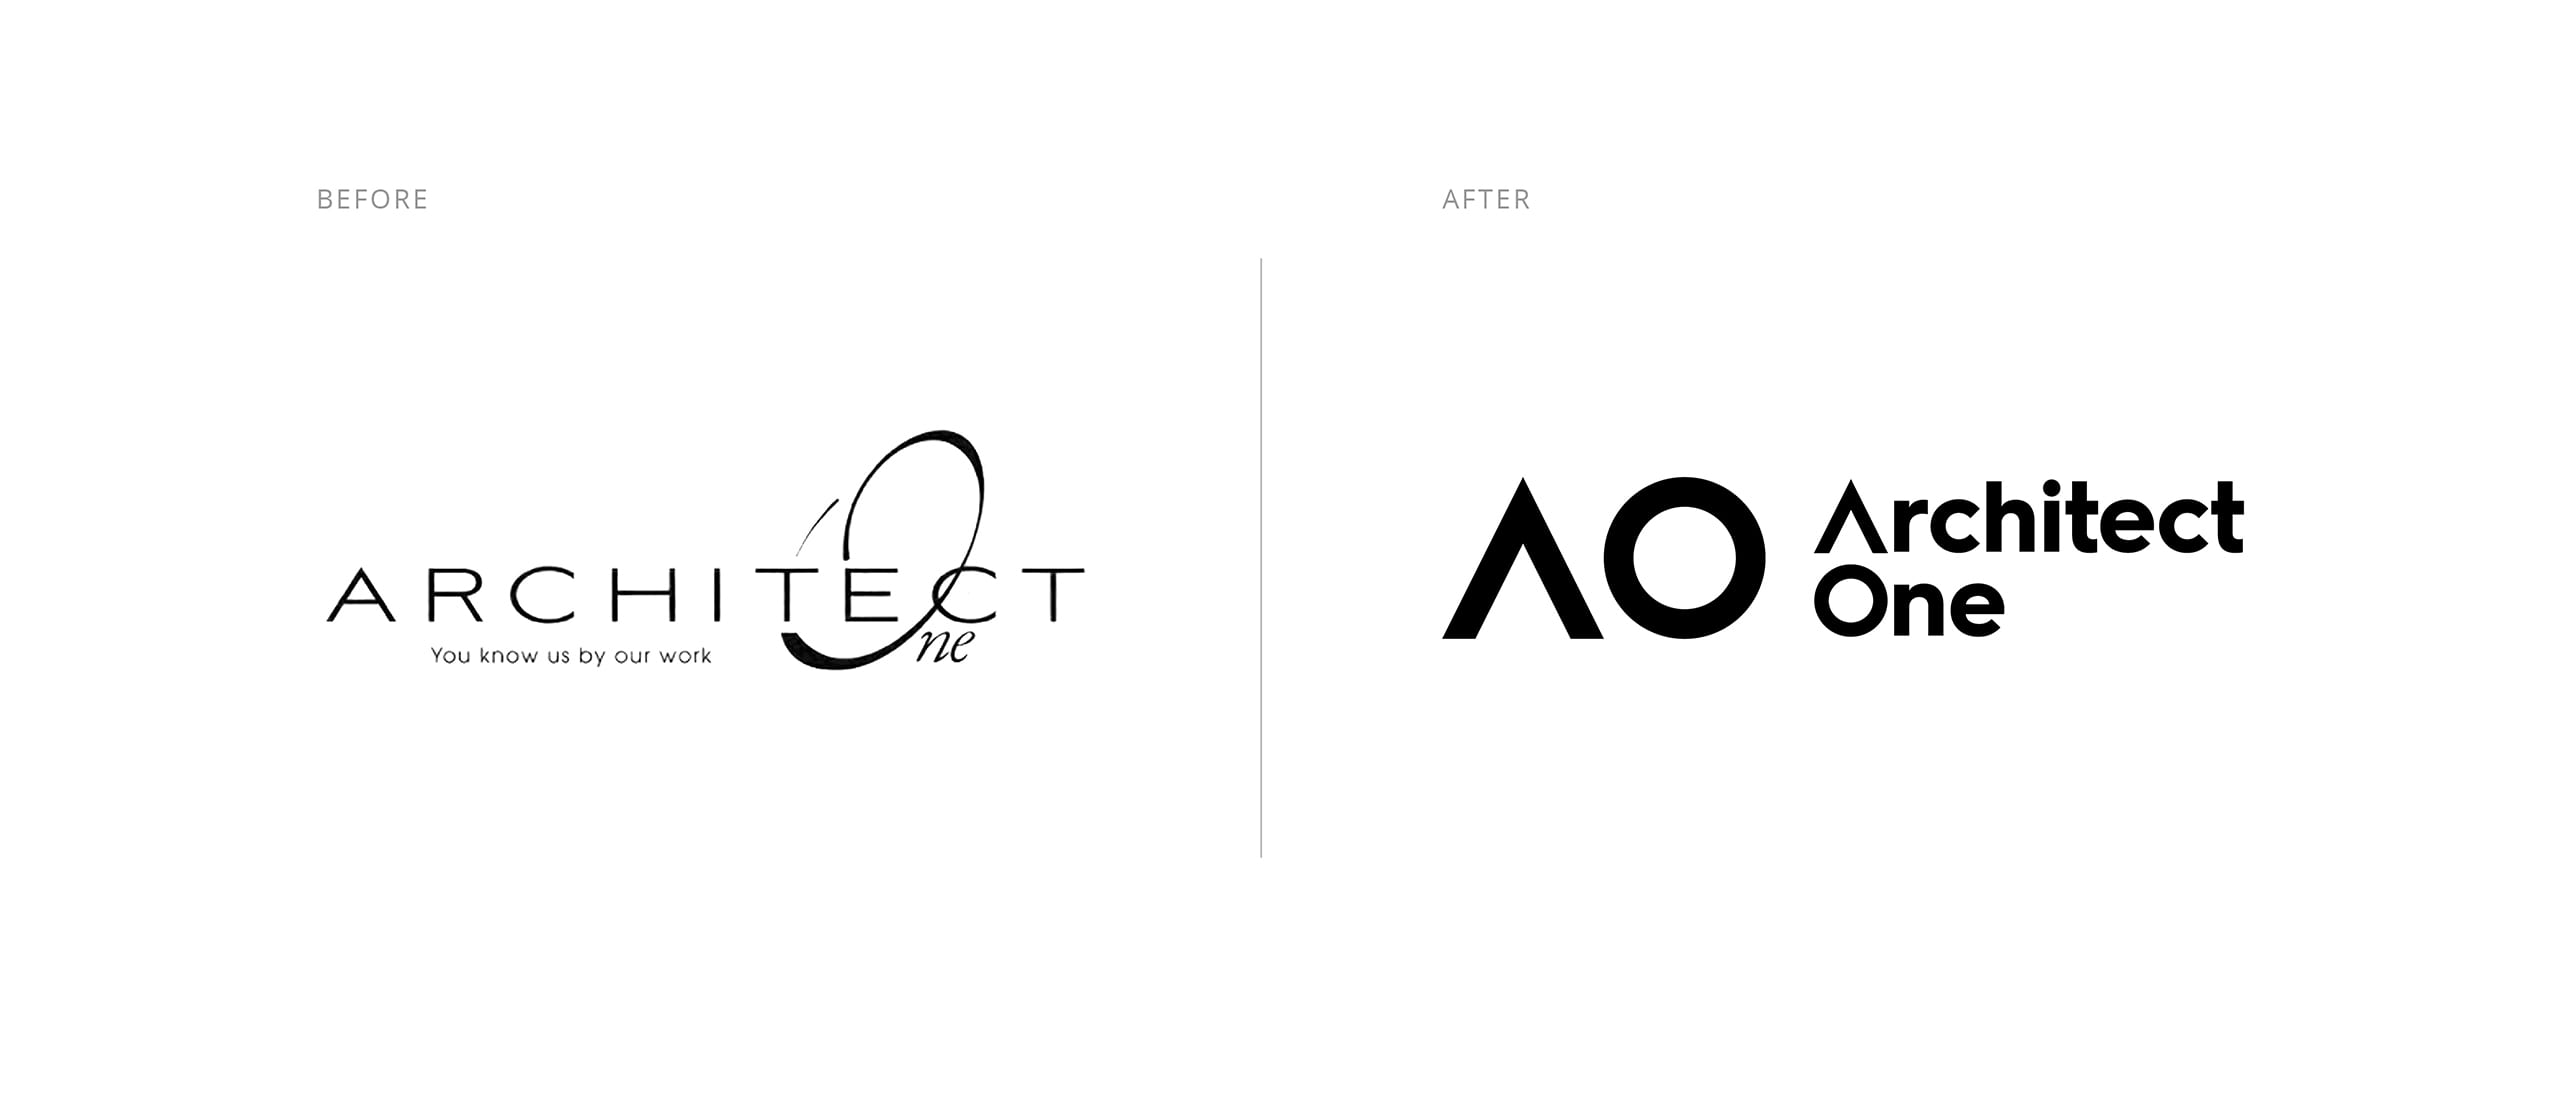 Architect One Logo Before and After